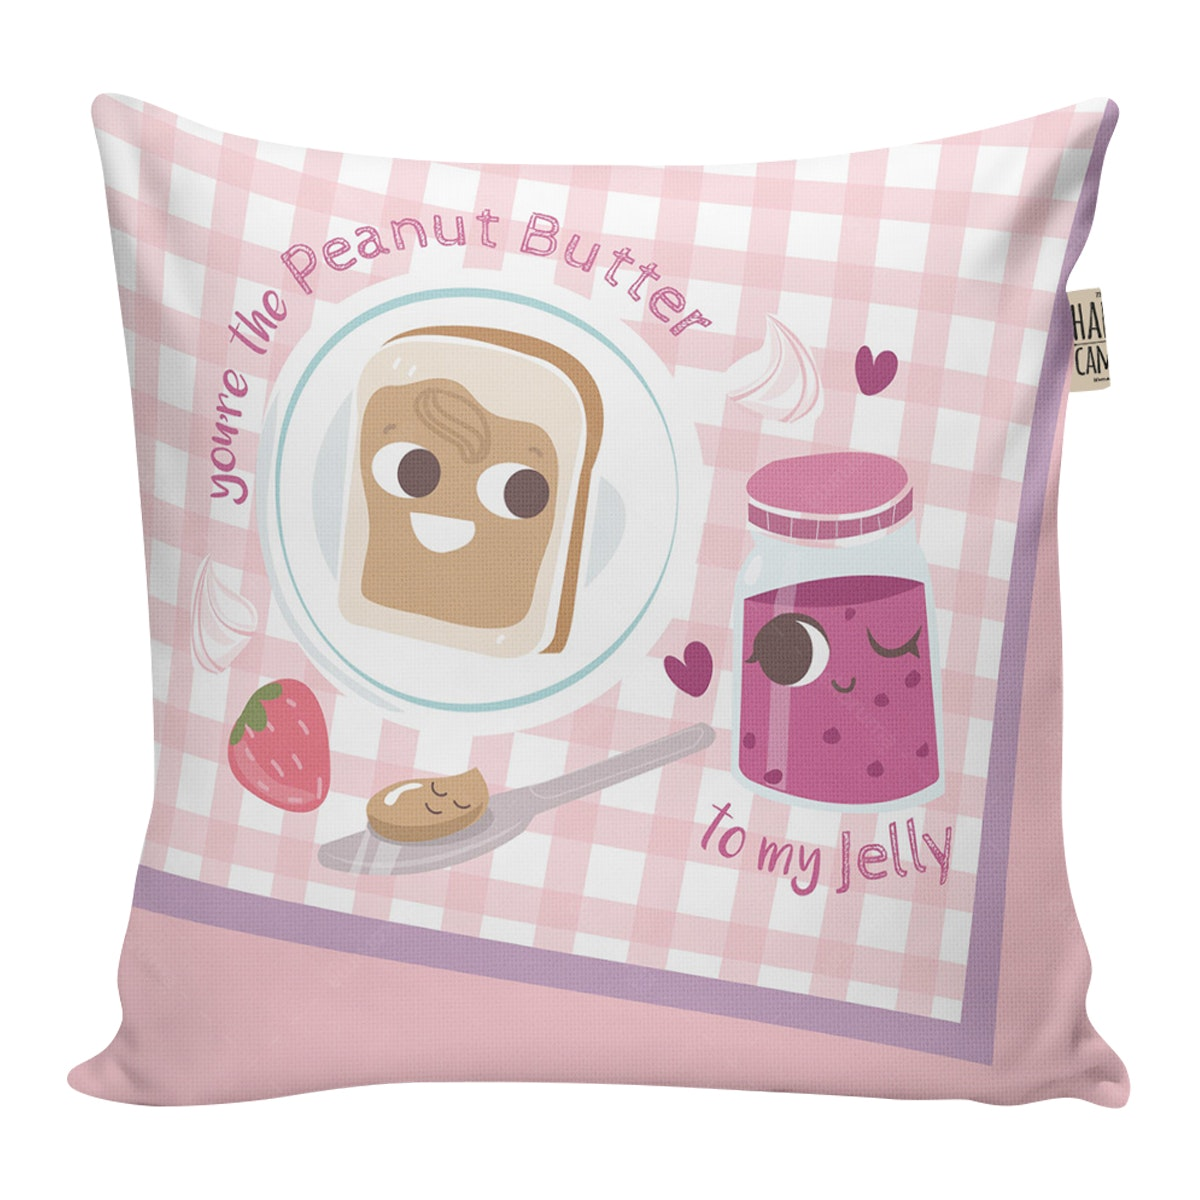 The Happy Camper You're The Peanut Butter To My Jelly Cushion 40x40cm